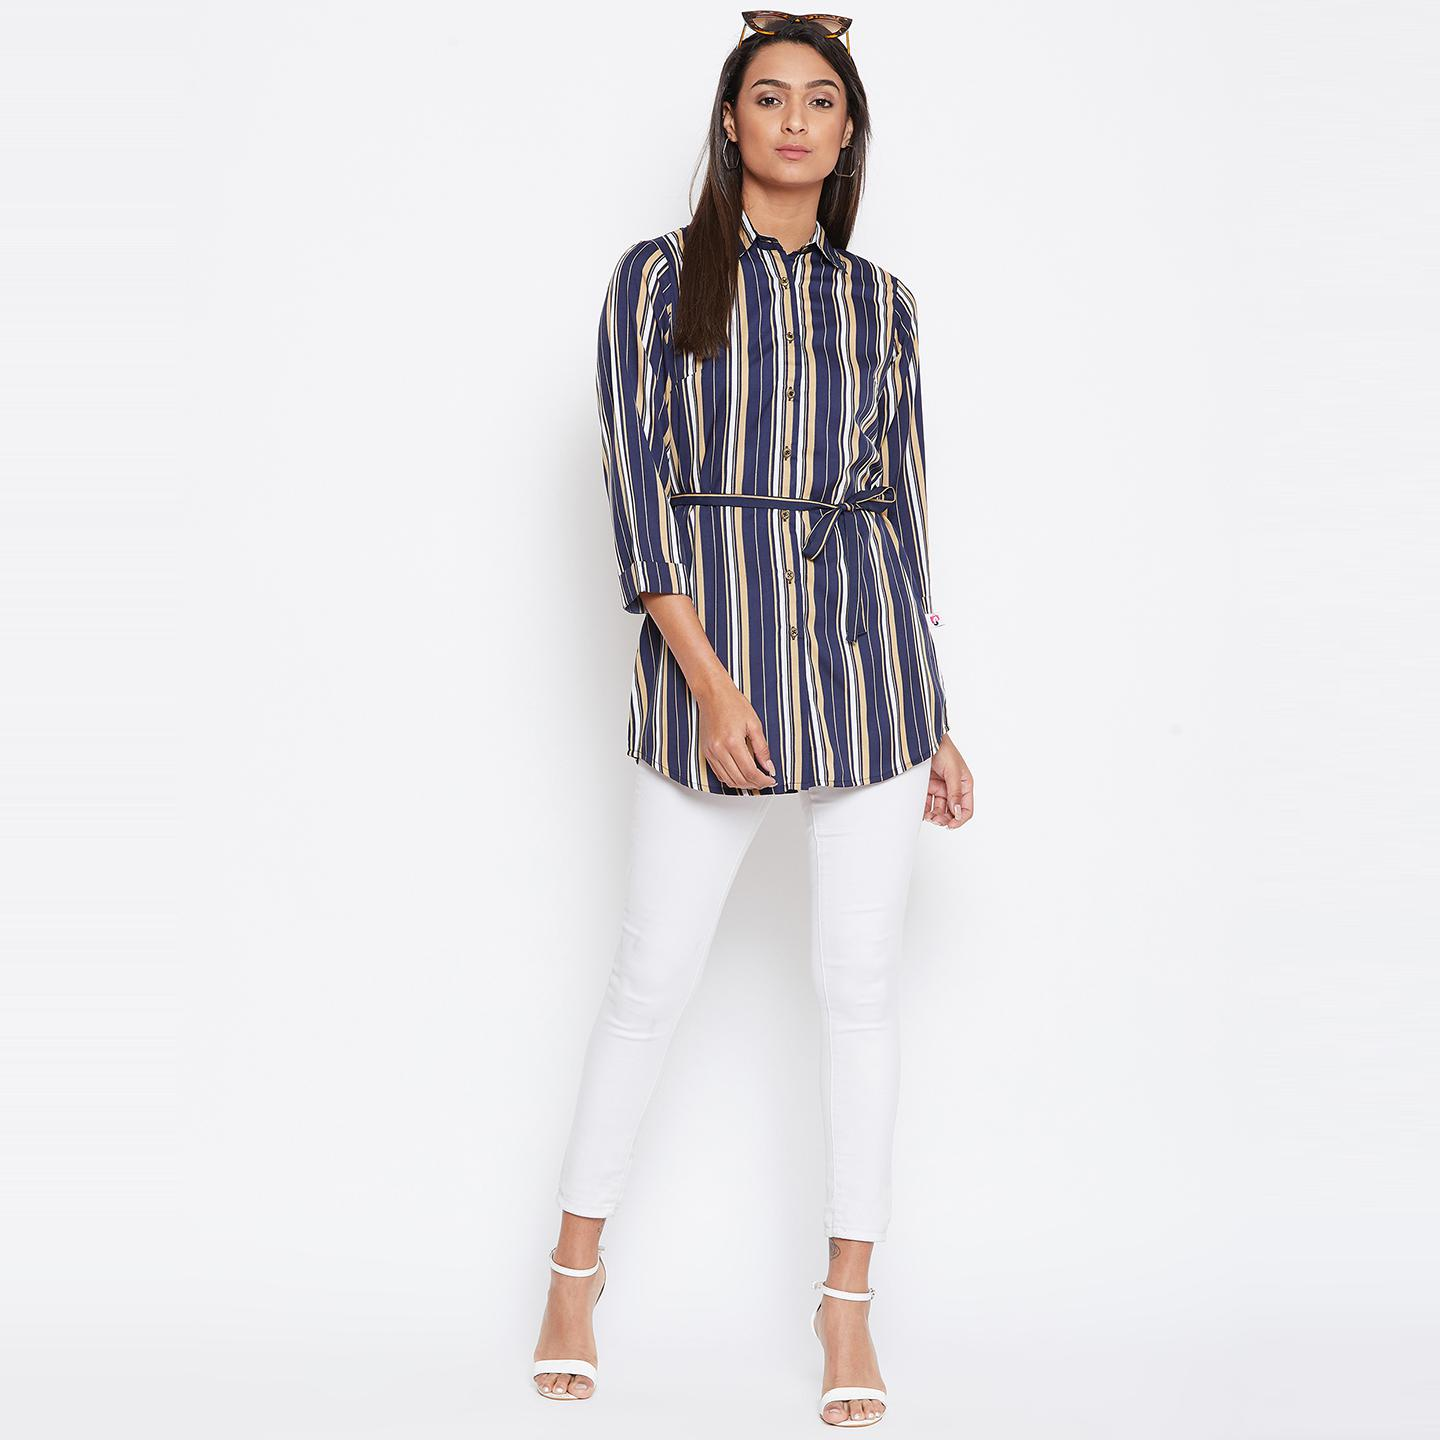 Sethi Daughters Women Navy Blue Color Stripe Printed waist tie up Shirt Style Tunic